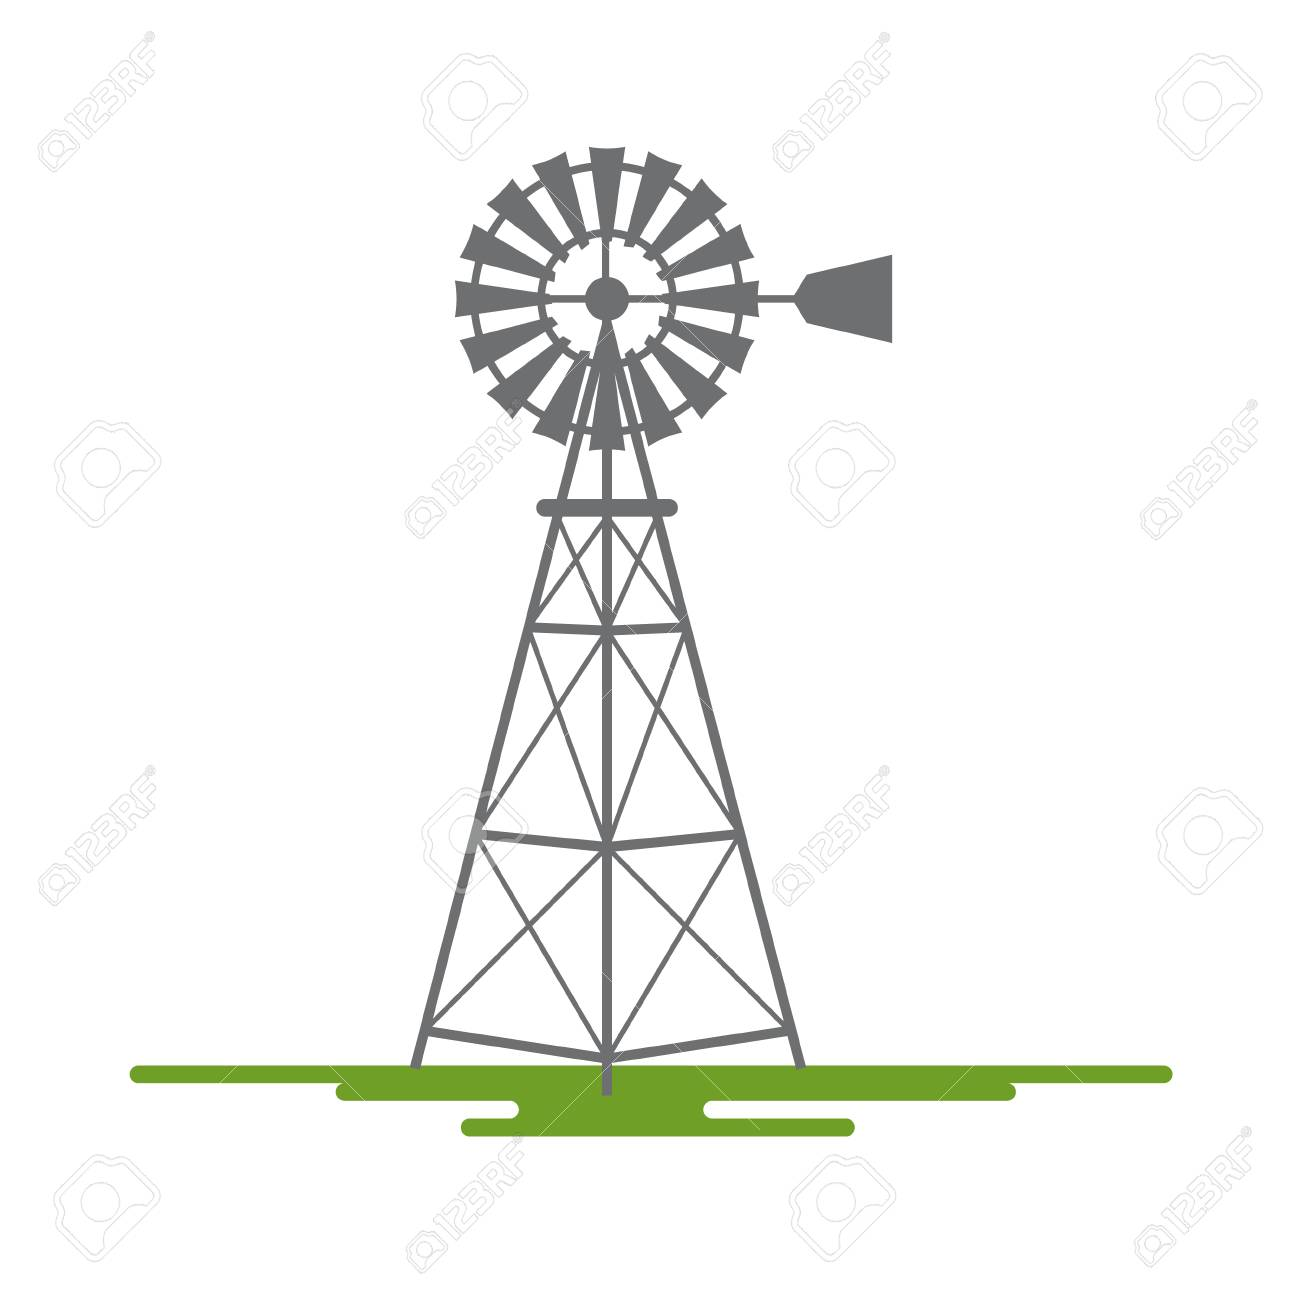 Windmill Flat Design Vector Symbol Isolated on White Background - 96083983